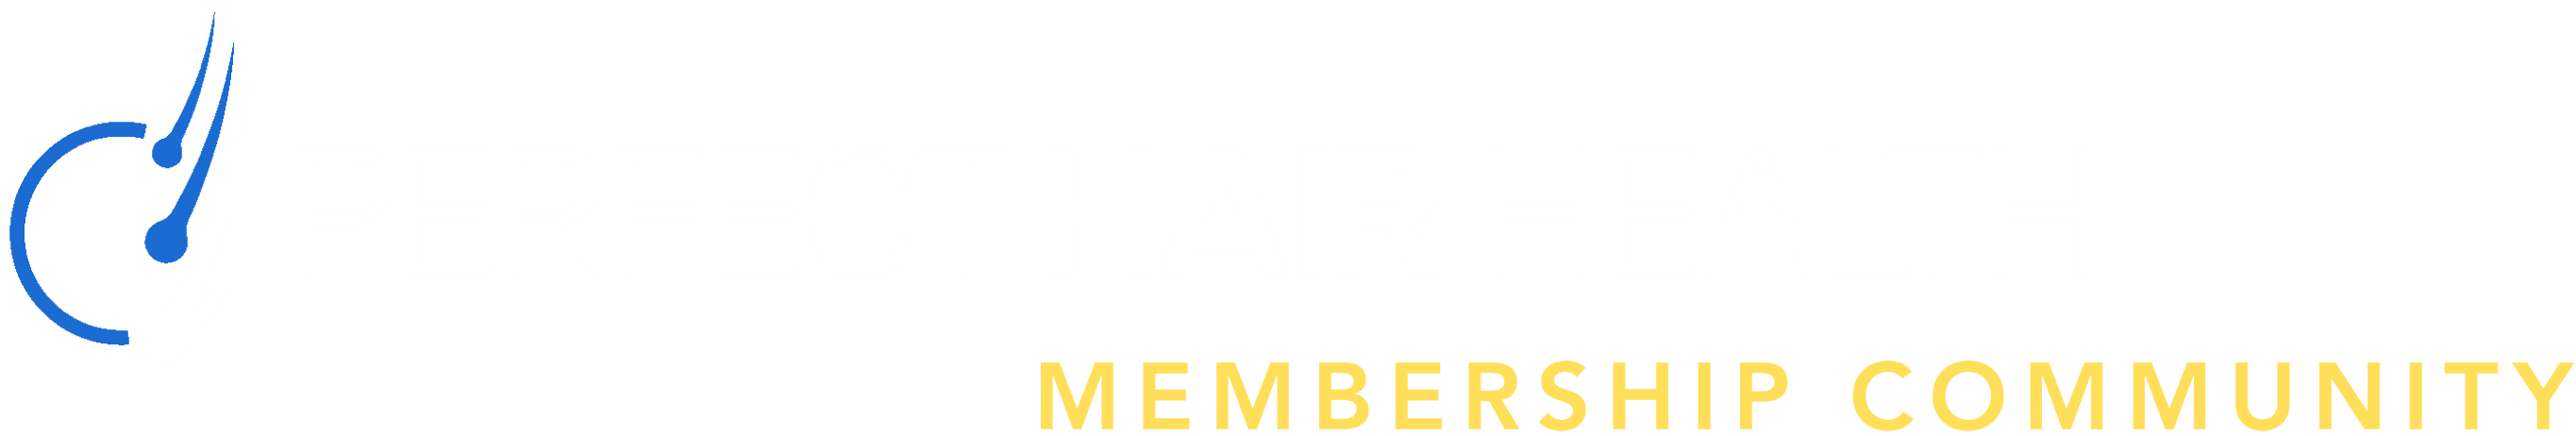 Perfect Hair Health Membership Community